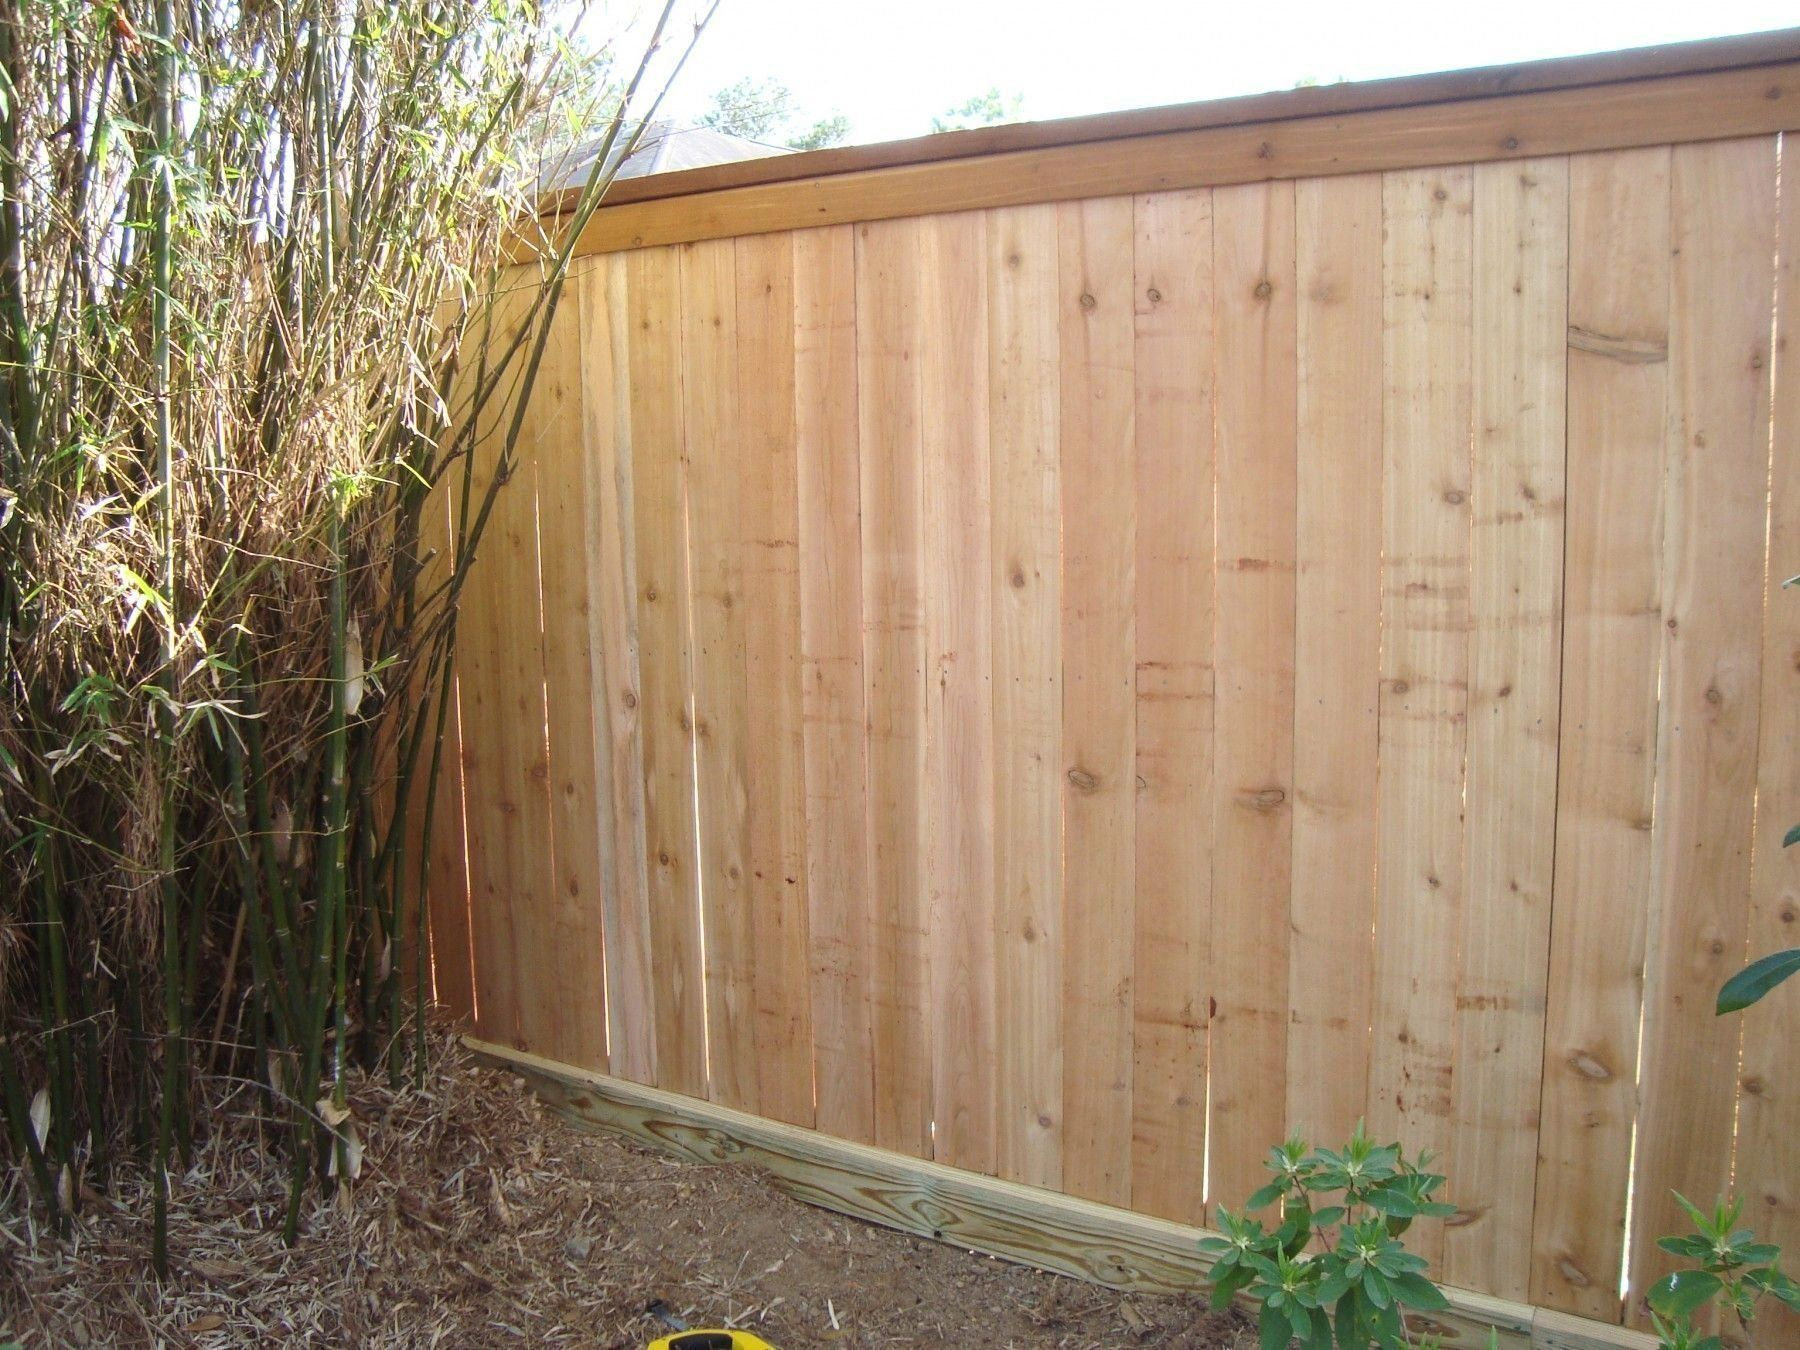 6 Ft Cap Top Fence With 2x6 Rot Board 2x6 Cedar Cap With 1x4 Cedar Trim Moder 1000 In 2020 Cedar Wood Fence Cedar Fence Wood Fence